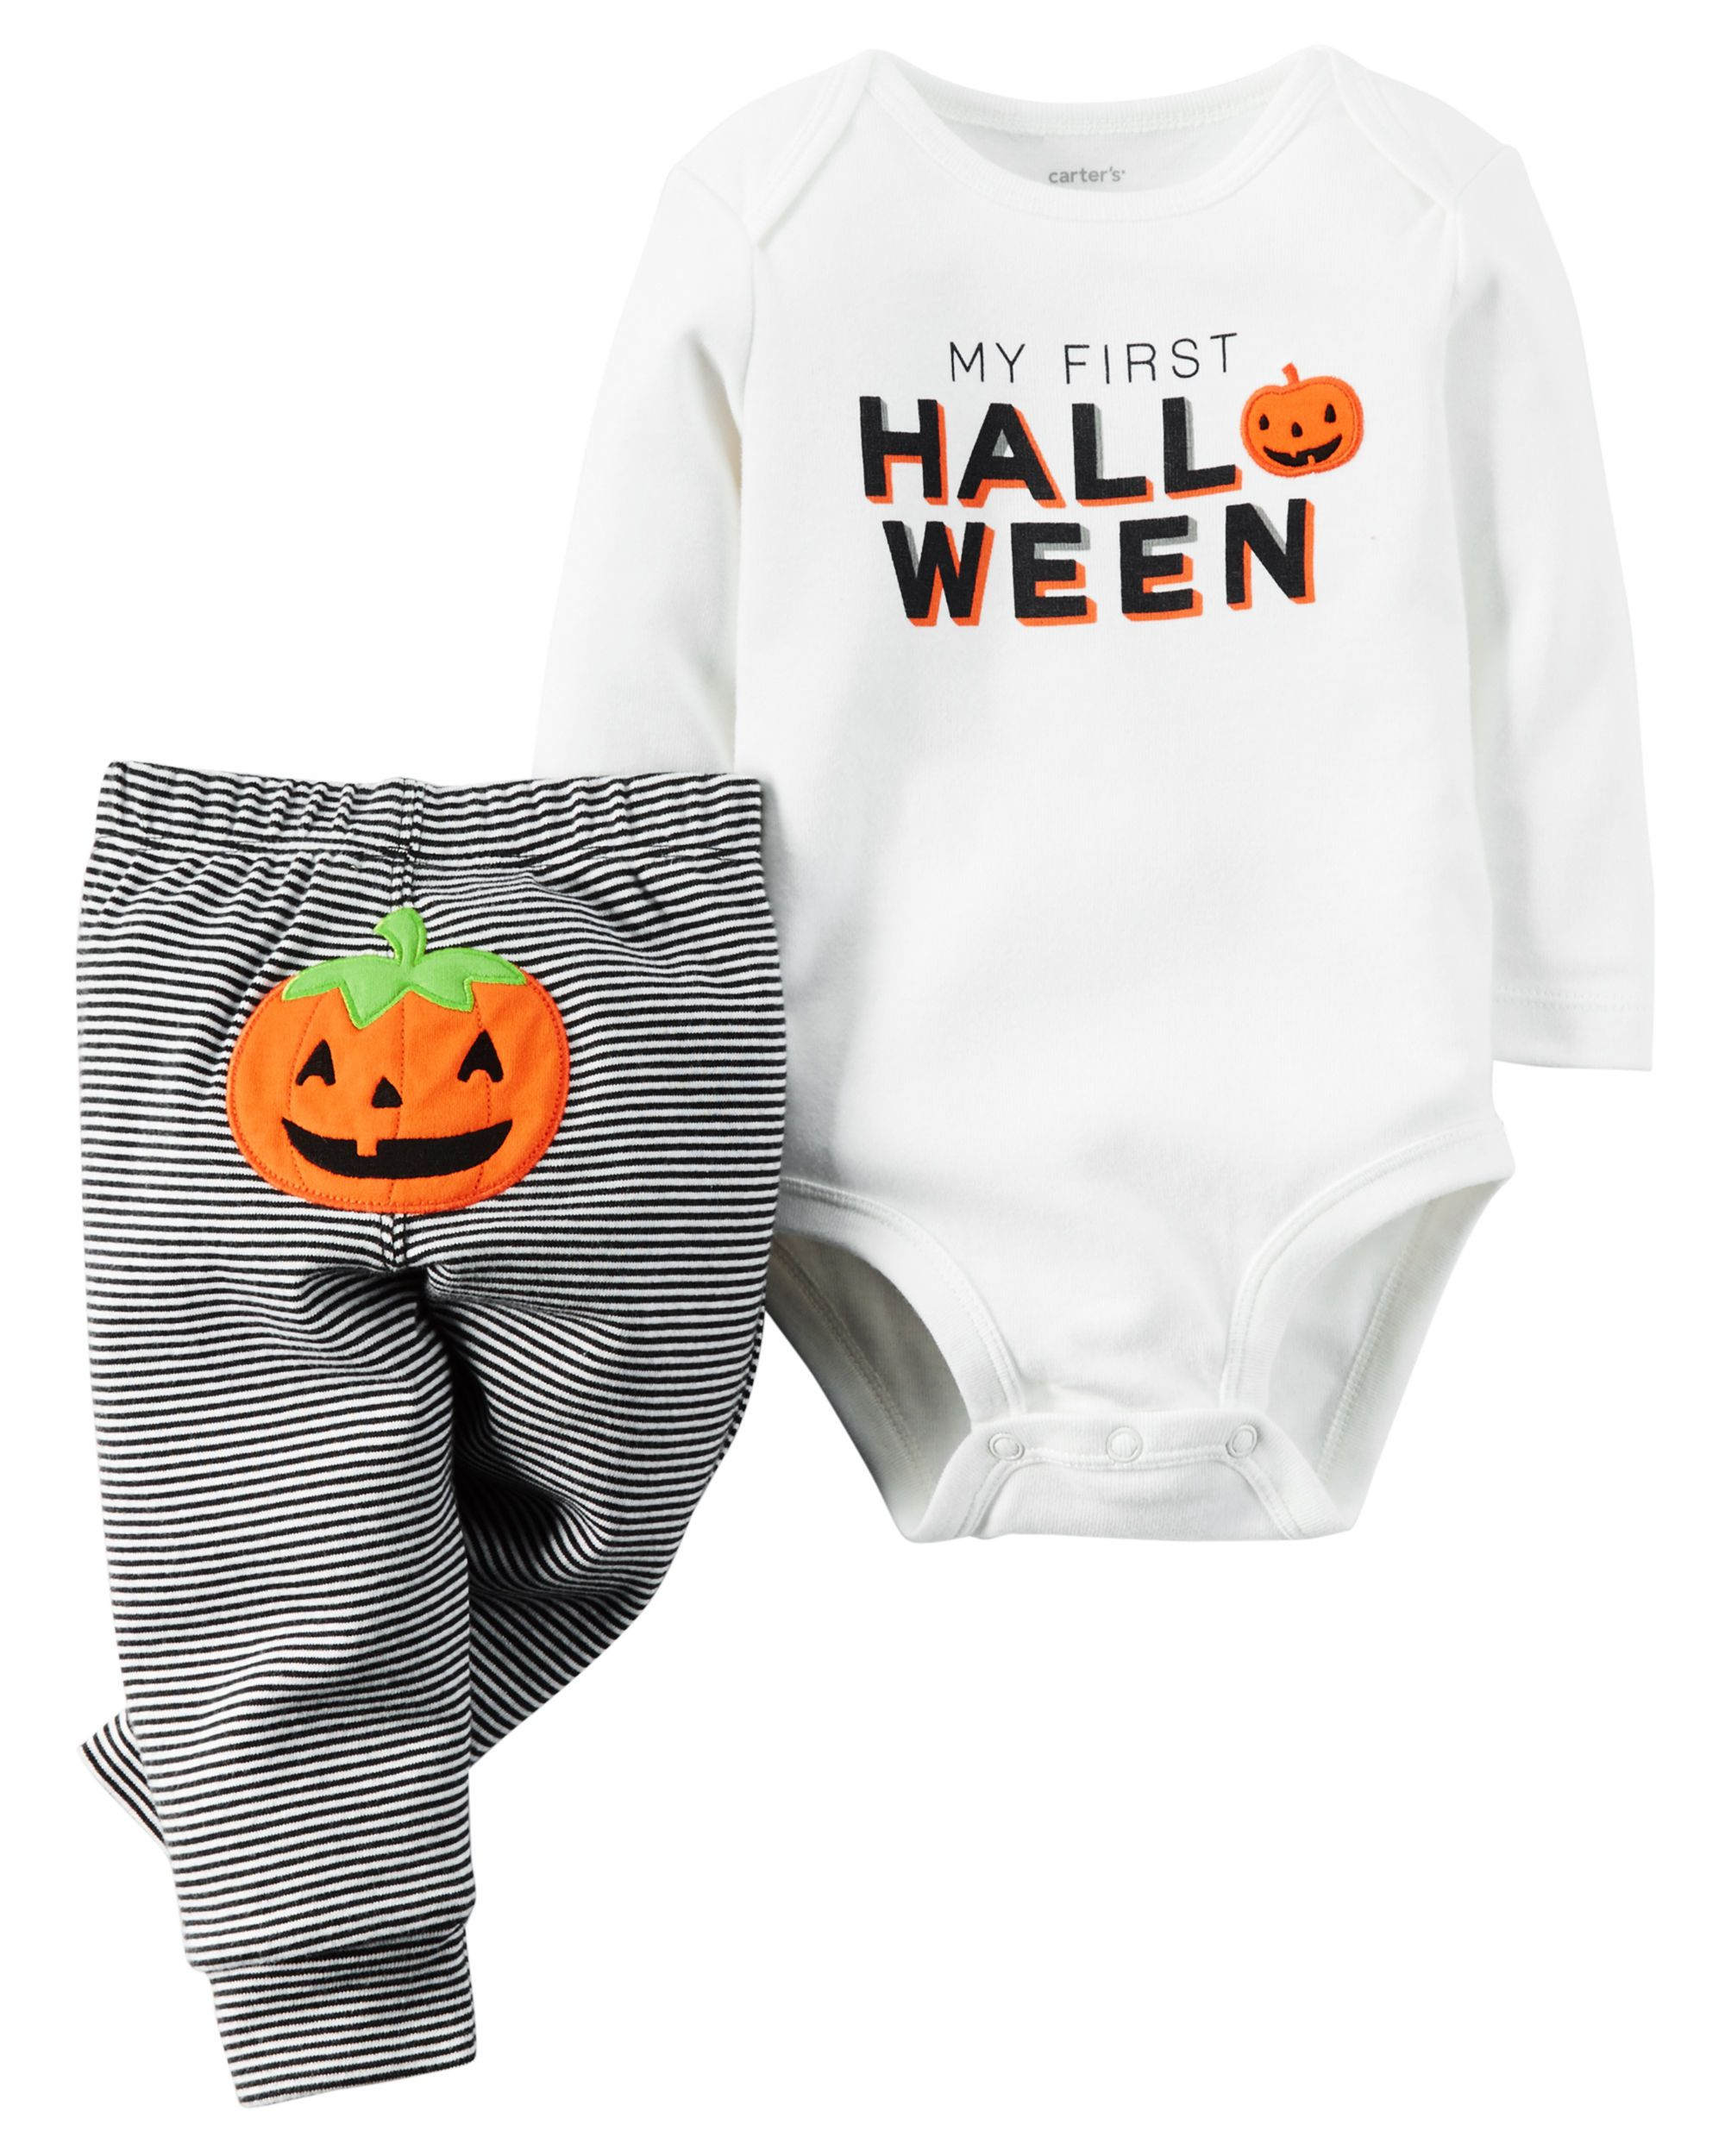 05a56ae42659c Baby's first Halloween is scary cute with this coordinating bodysuit and  legging set. Crafted in soft cotton with stripes and pumpkin details.